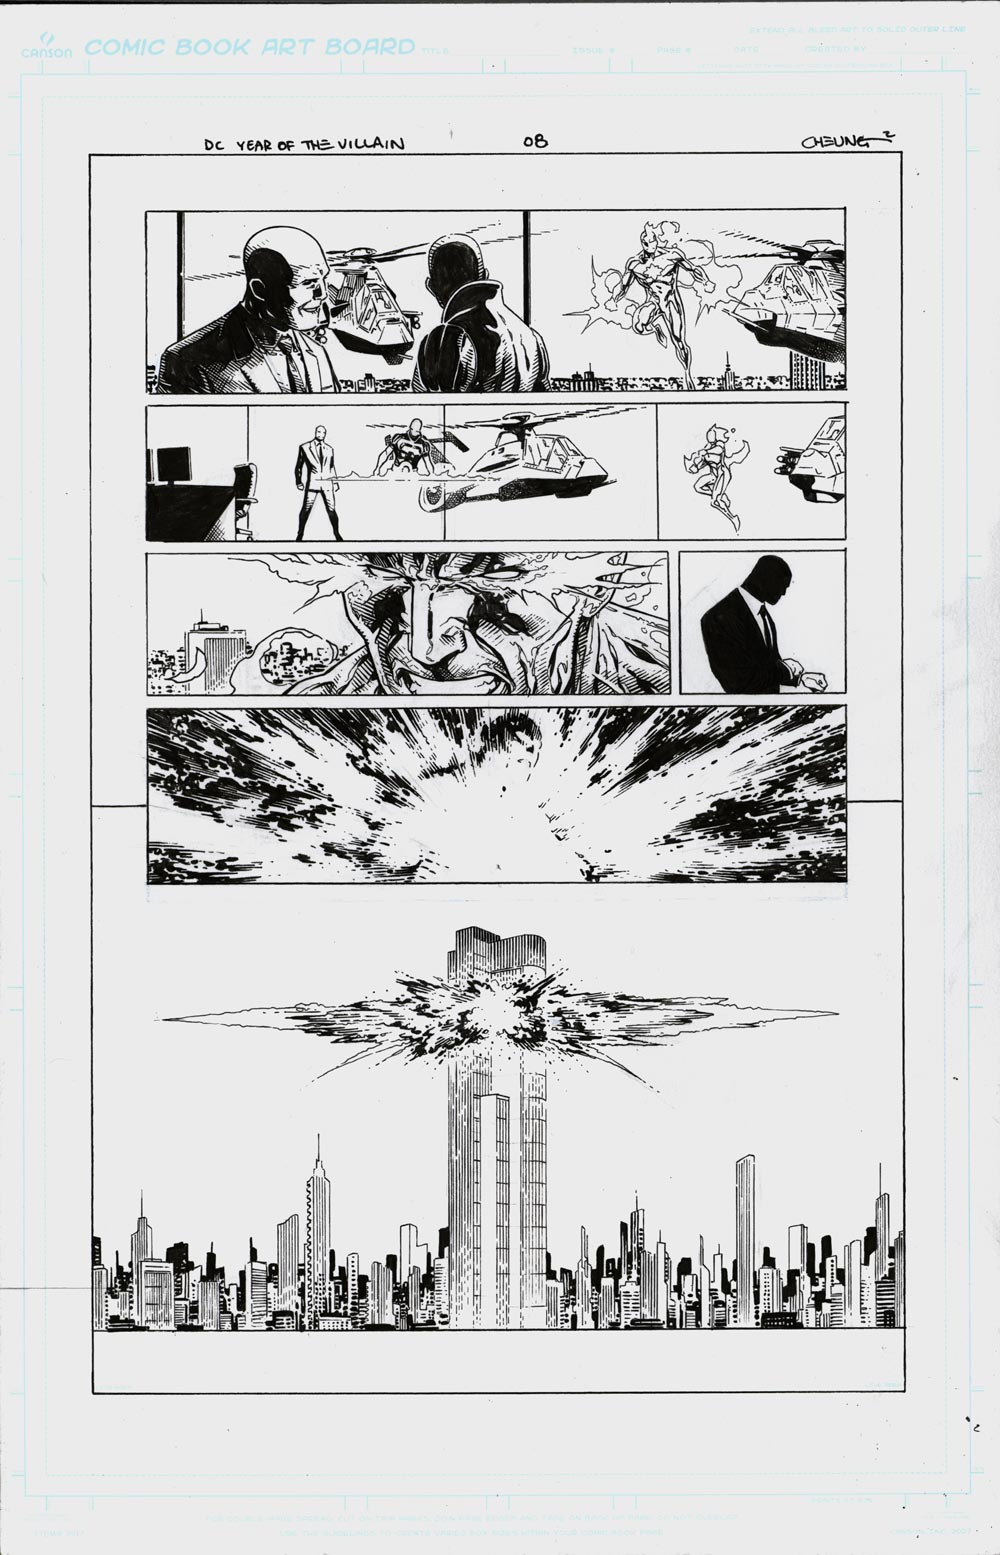 Image of YEAR OF THE VILLAIN #1 - Page 08